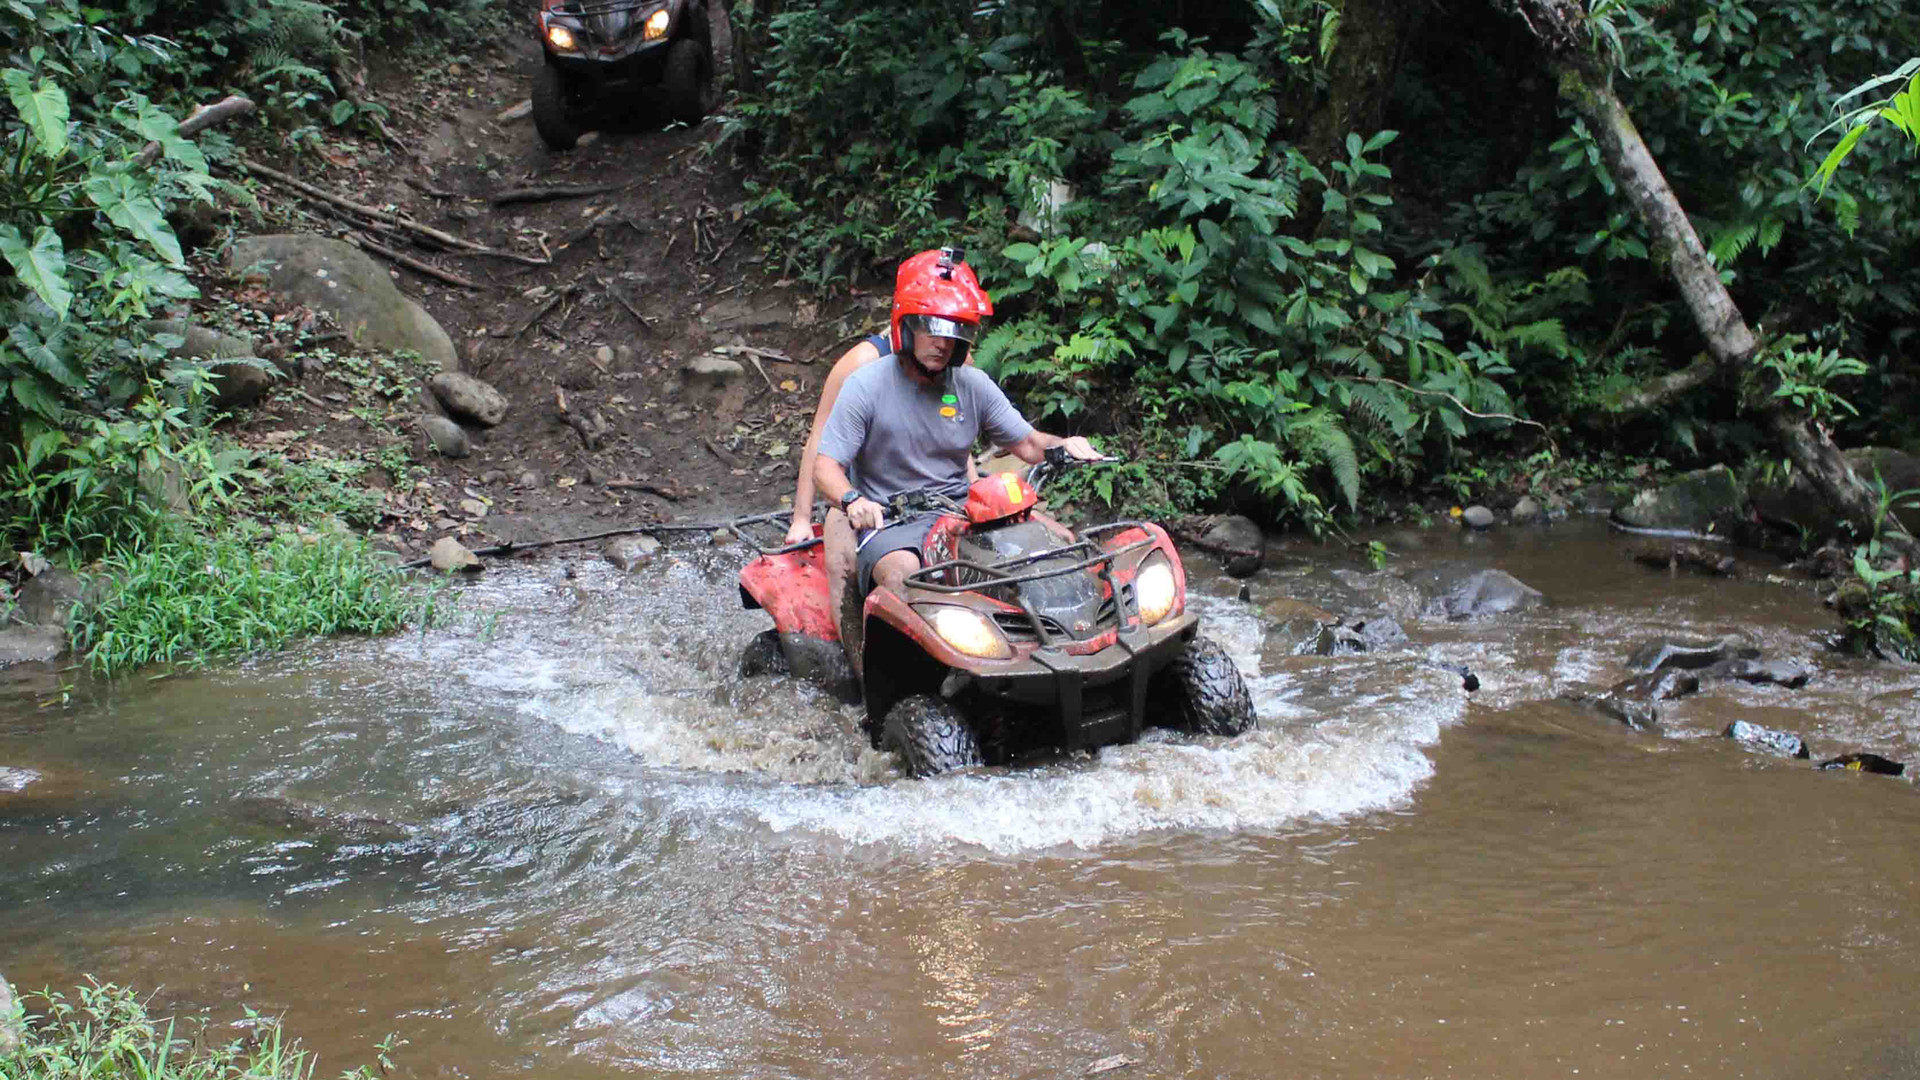 Monteverde Costa Rica ATV adventure tour two guests riding 4x4 with lights on crossing traversing river smiling